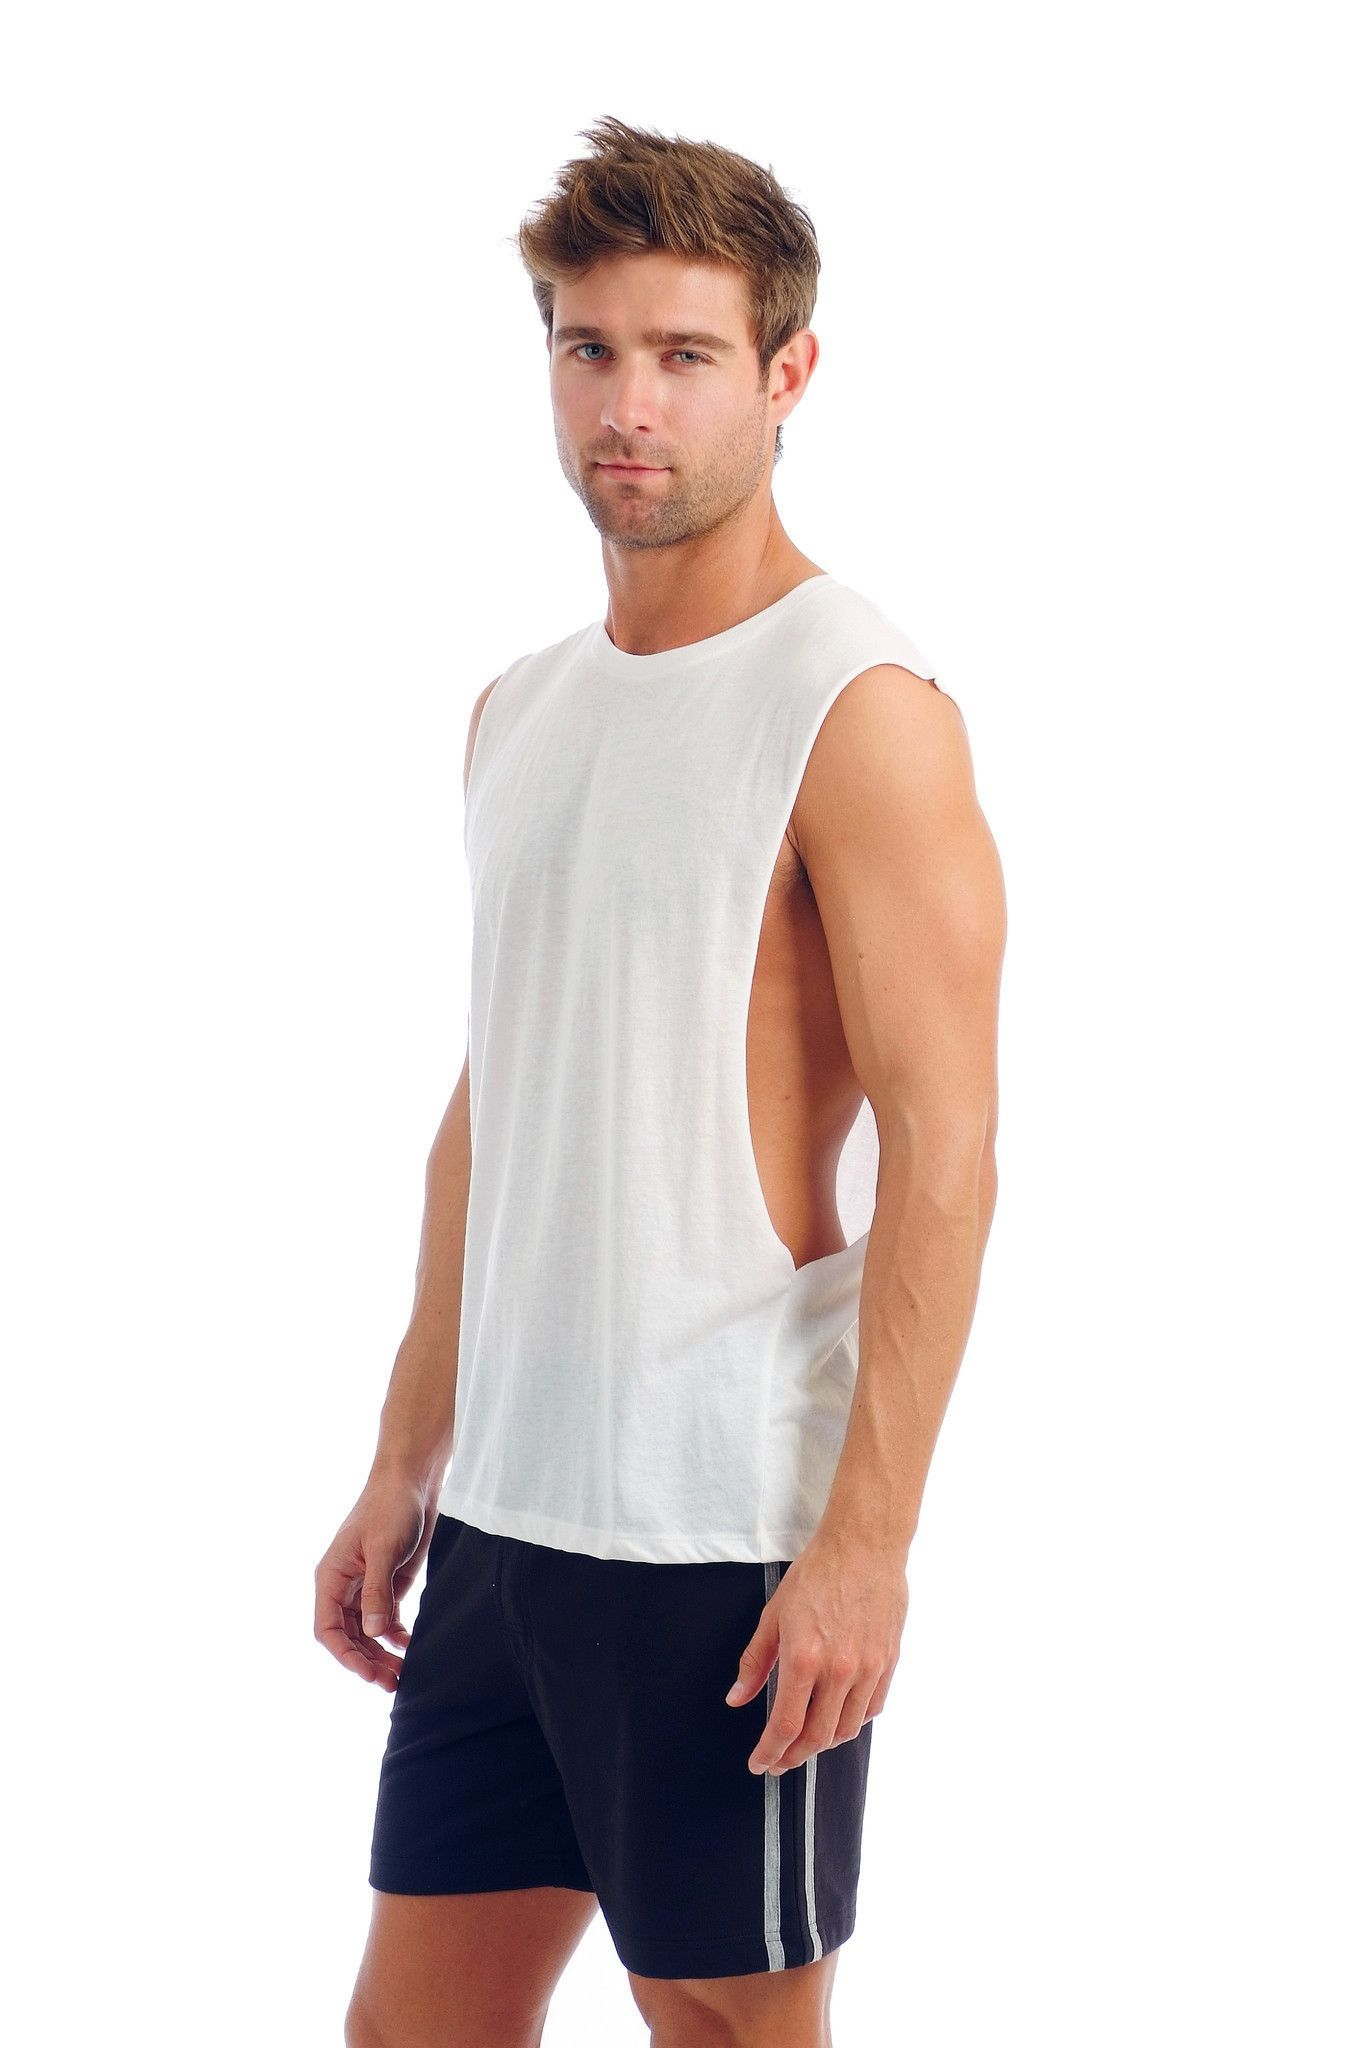 55e00e846d16d Our Men s muscle tank is one of our favorite tanks tops for men. This is  not your average muscle tank. With a very light weight and feel this muscle  tank ...